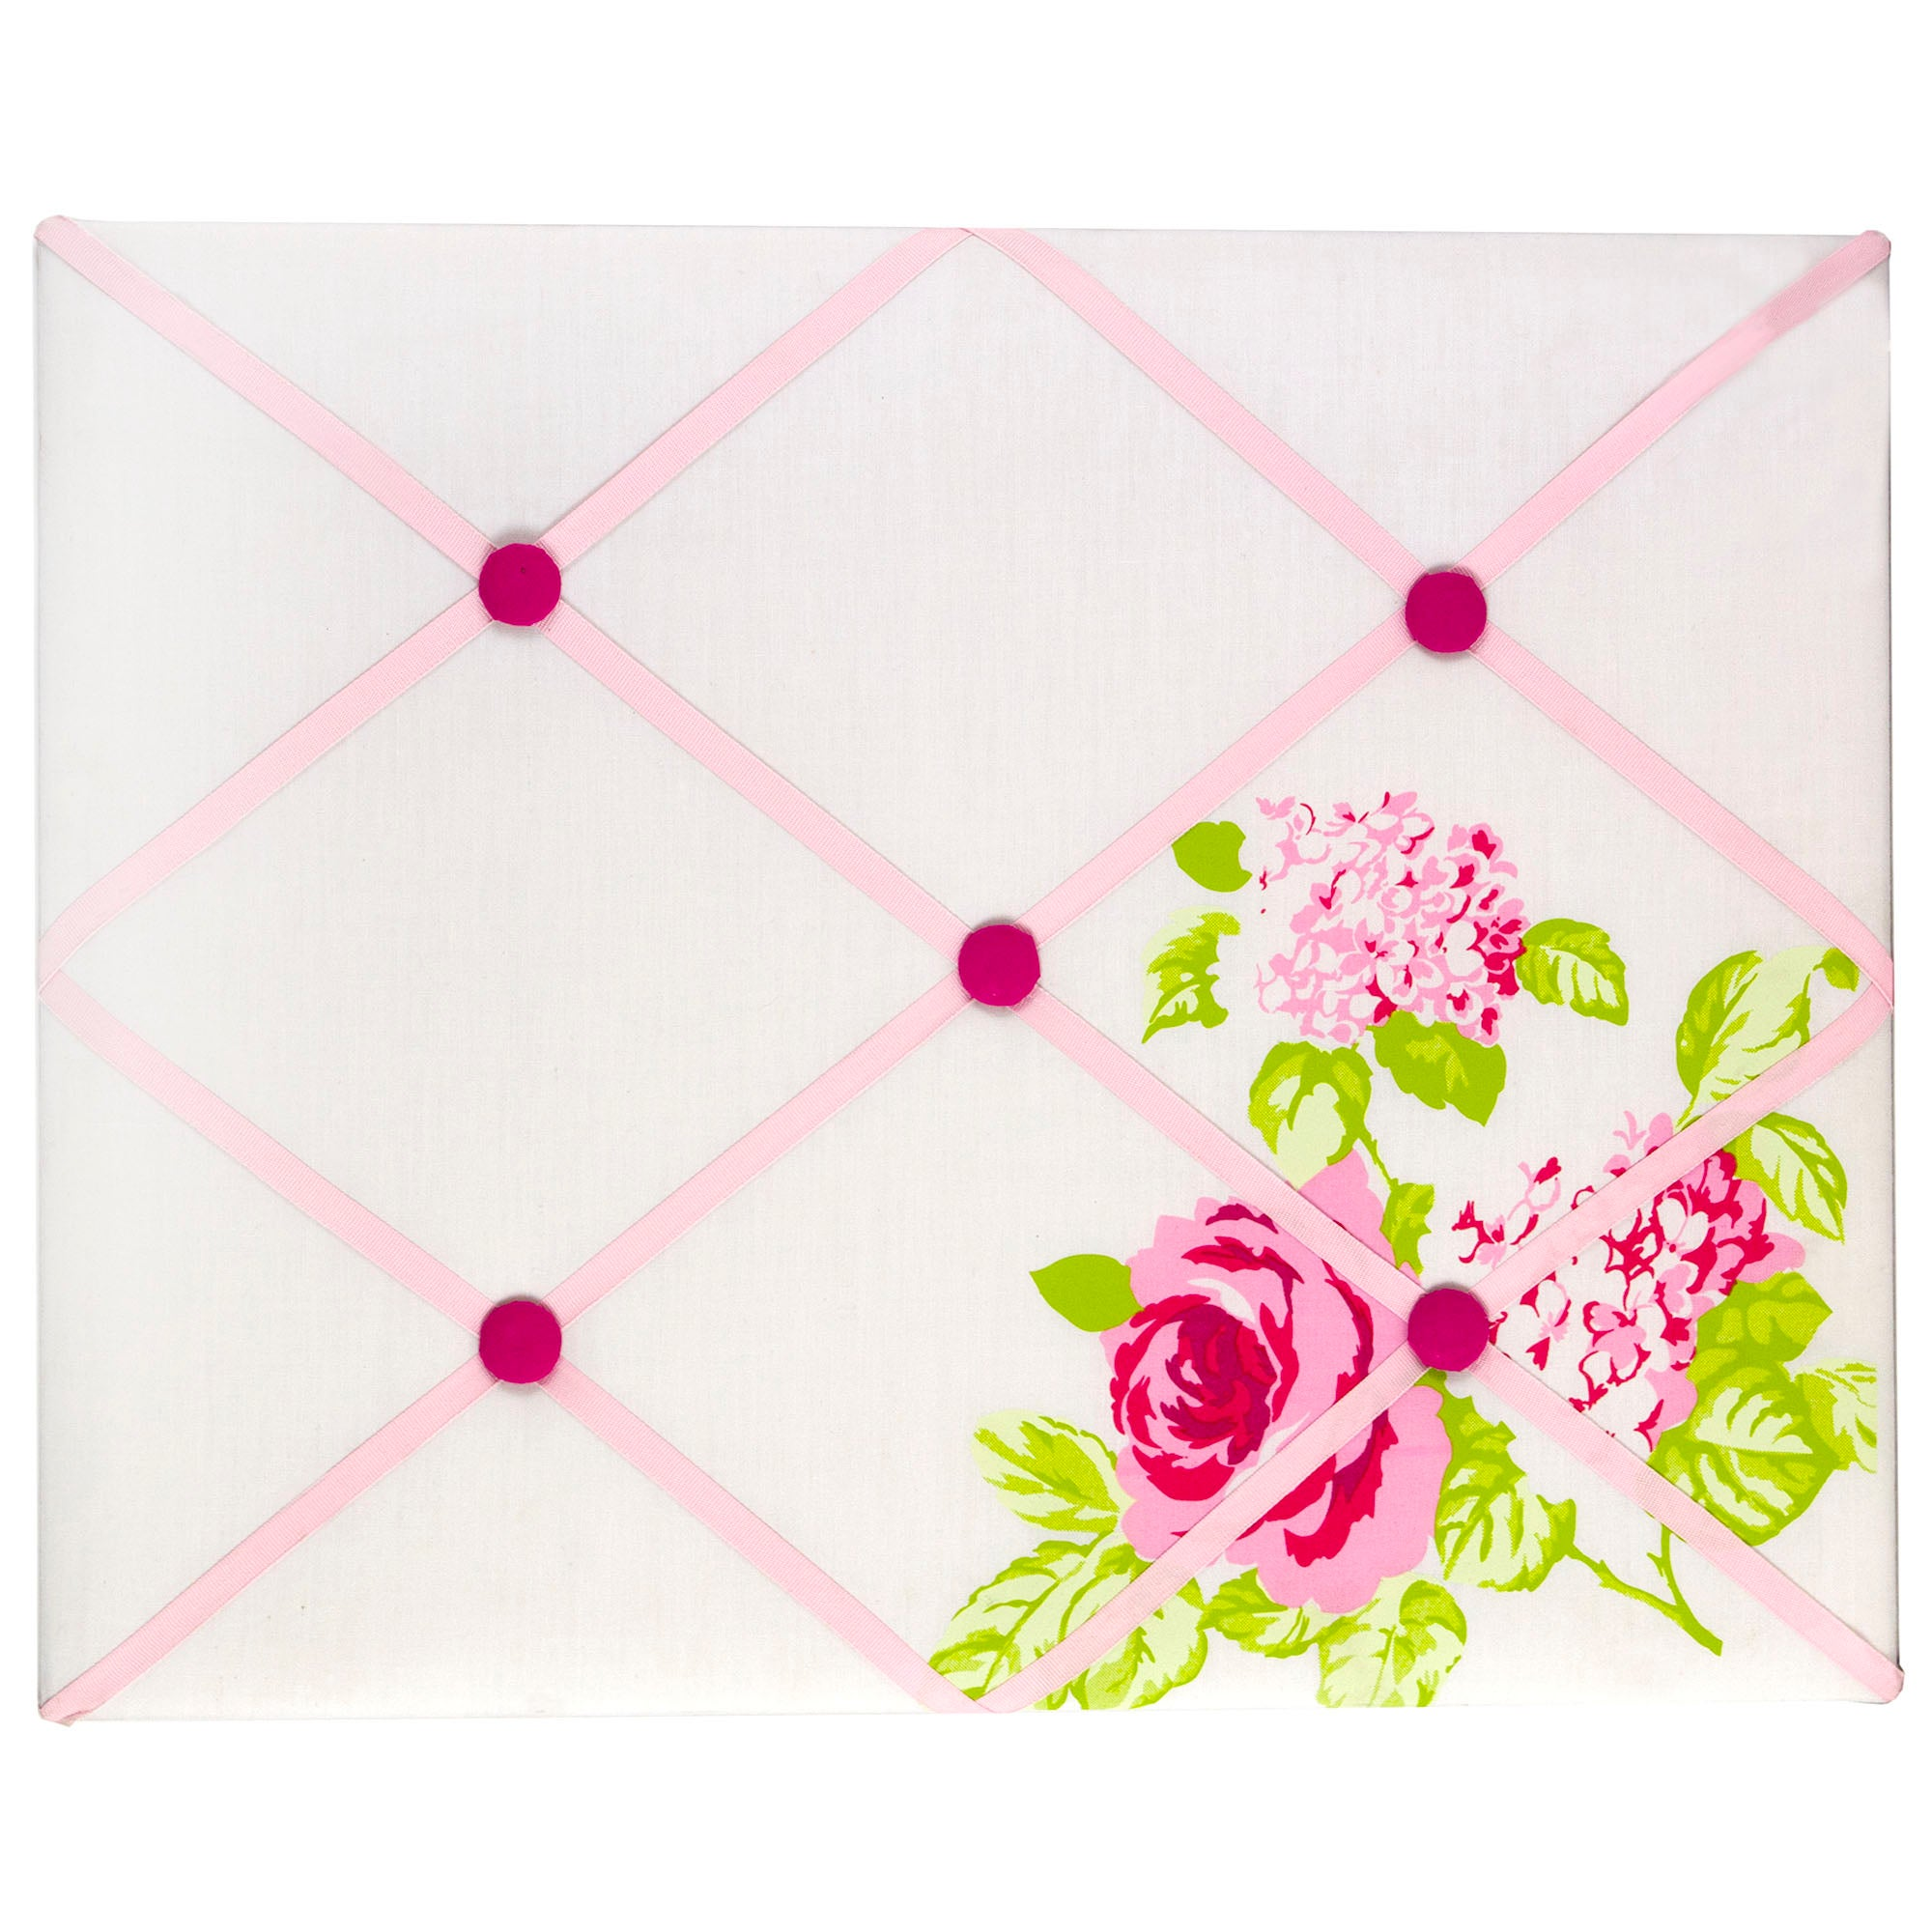 Rose and Ellis Clarendon Home Decor Collection